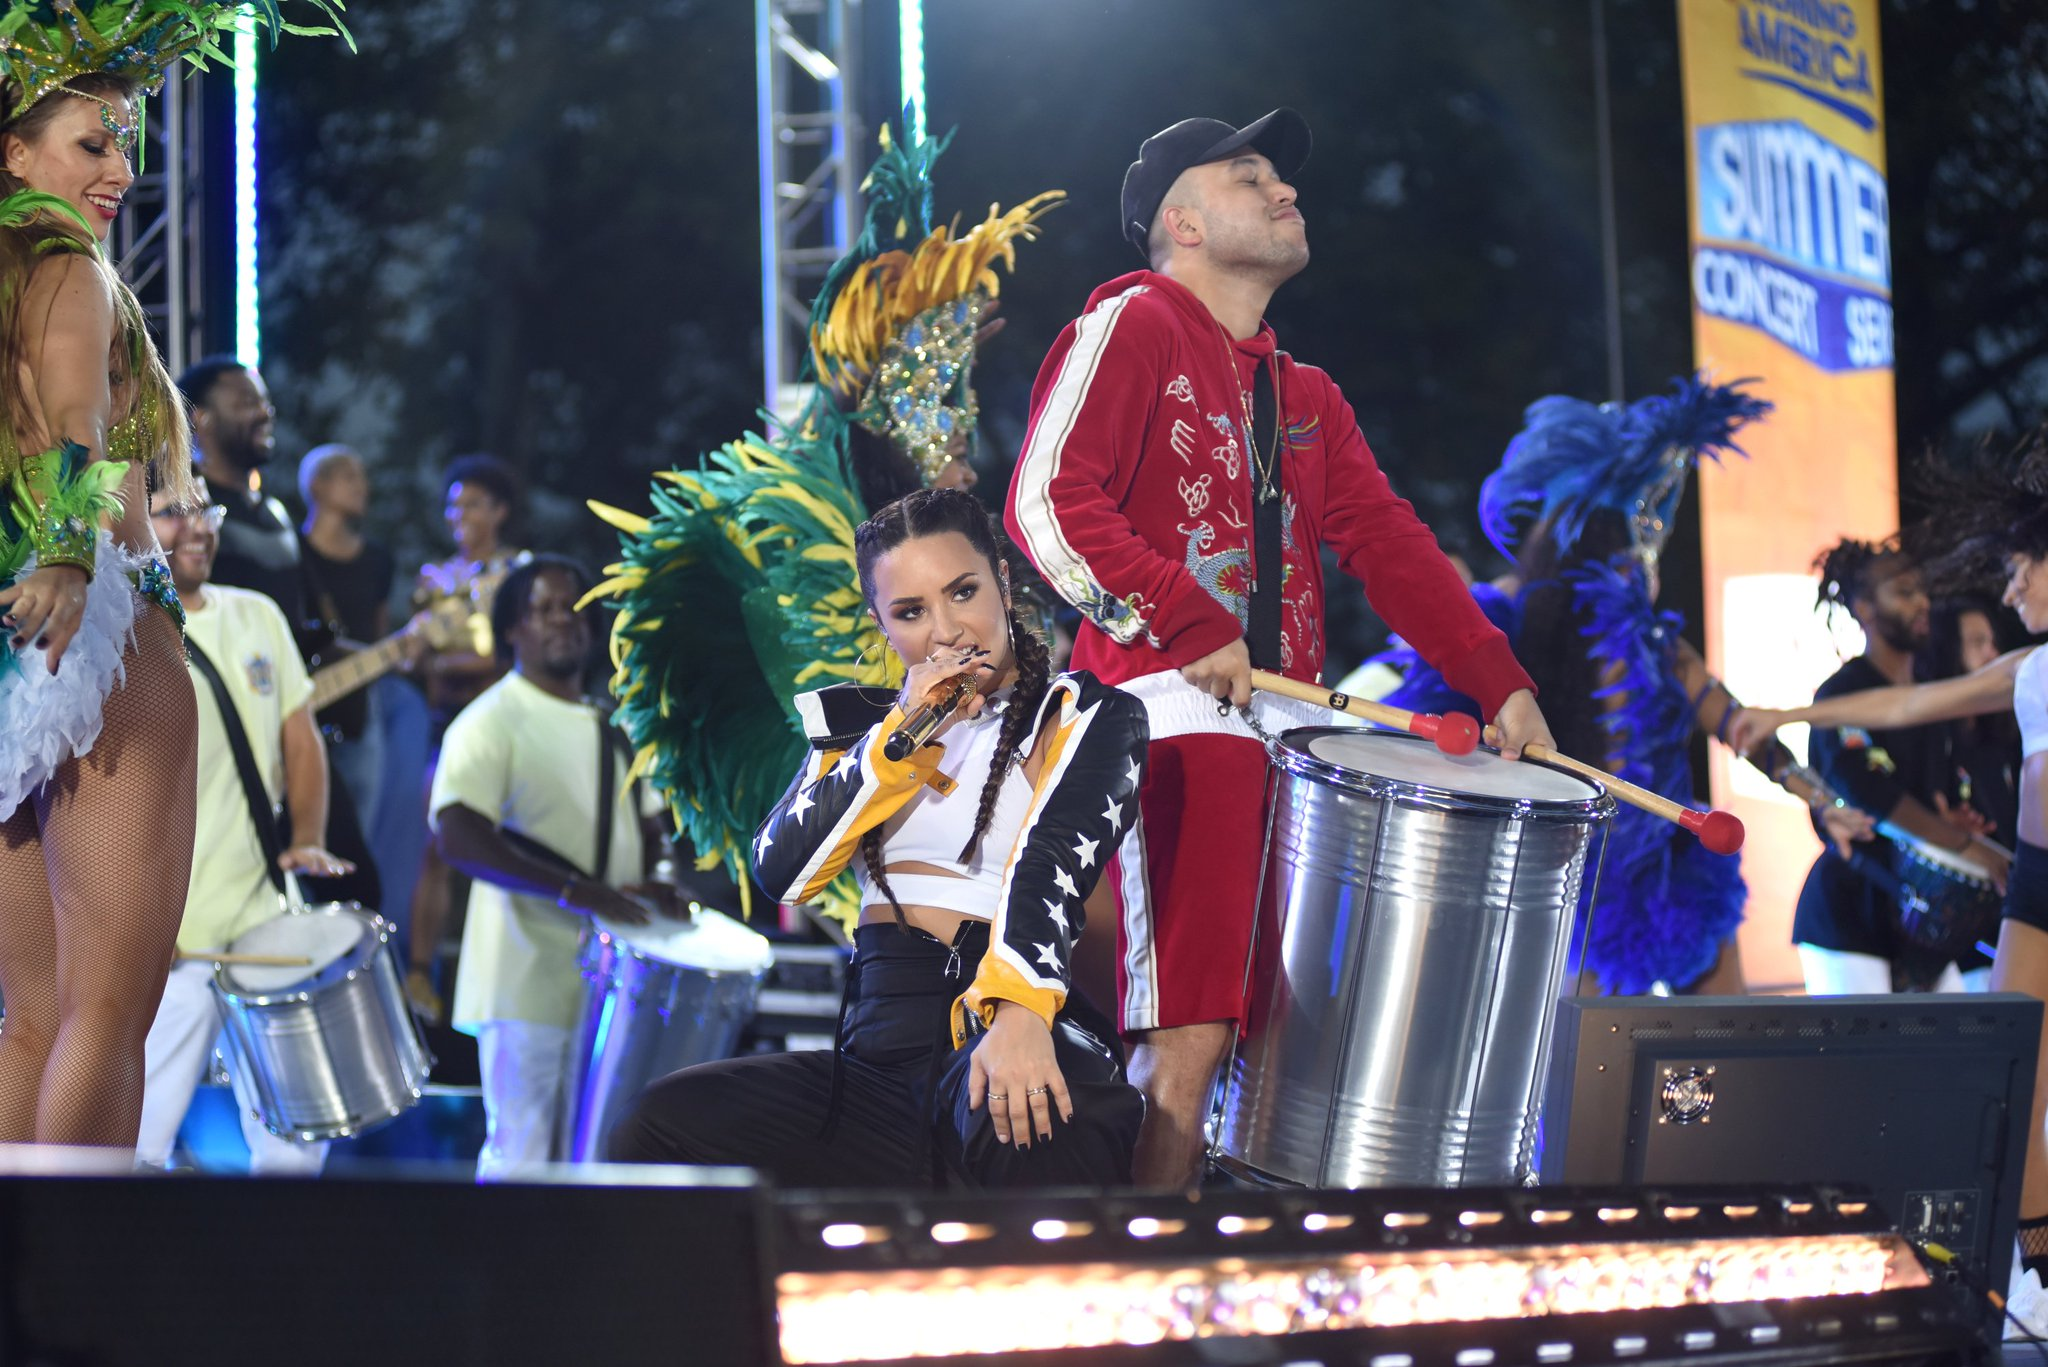 WATCH: @ddlovato and @JaxJones rock out to their new track 'Instruction' on @GMA! https://t.co/NF2nDHZ8Bl #DemiOnGMA https://t.co/al44SBCS76